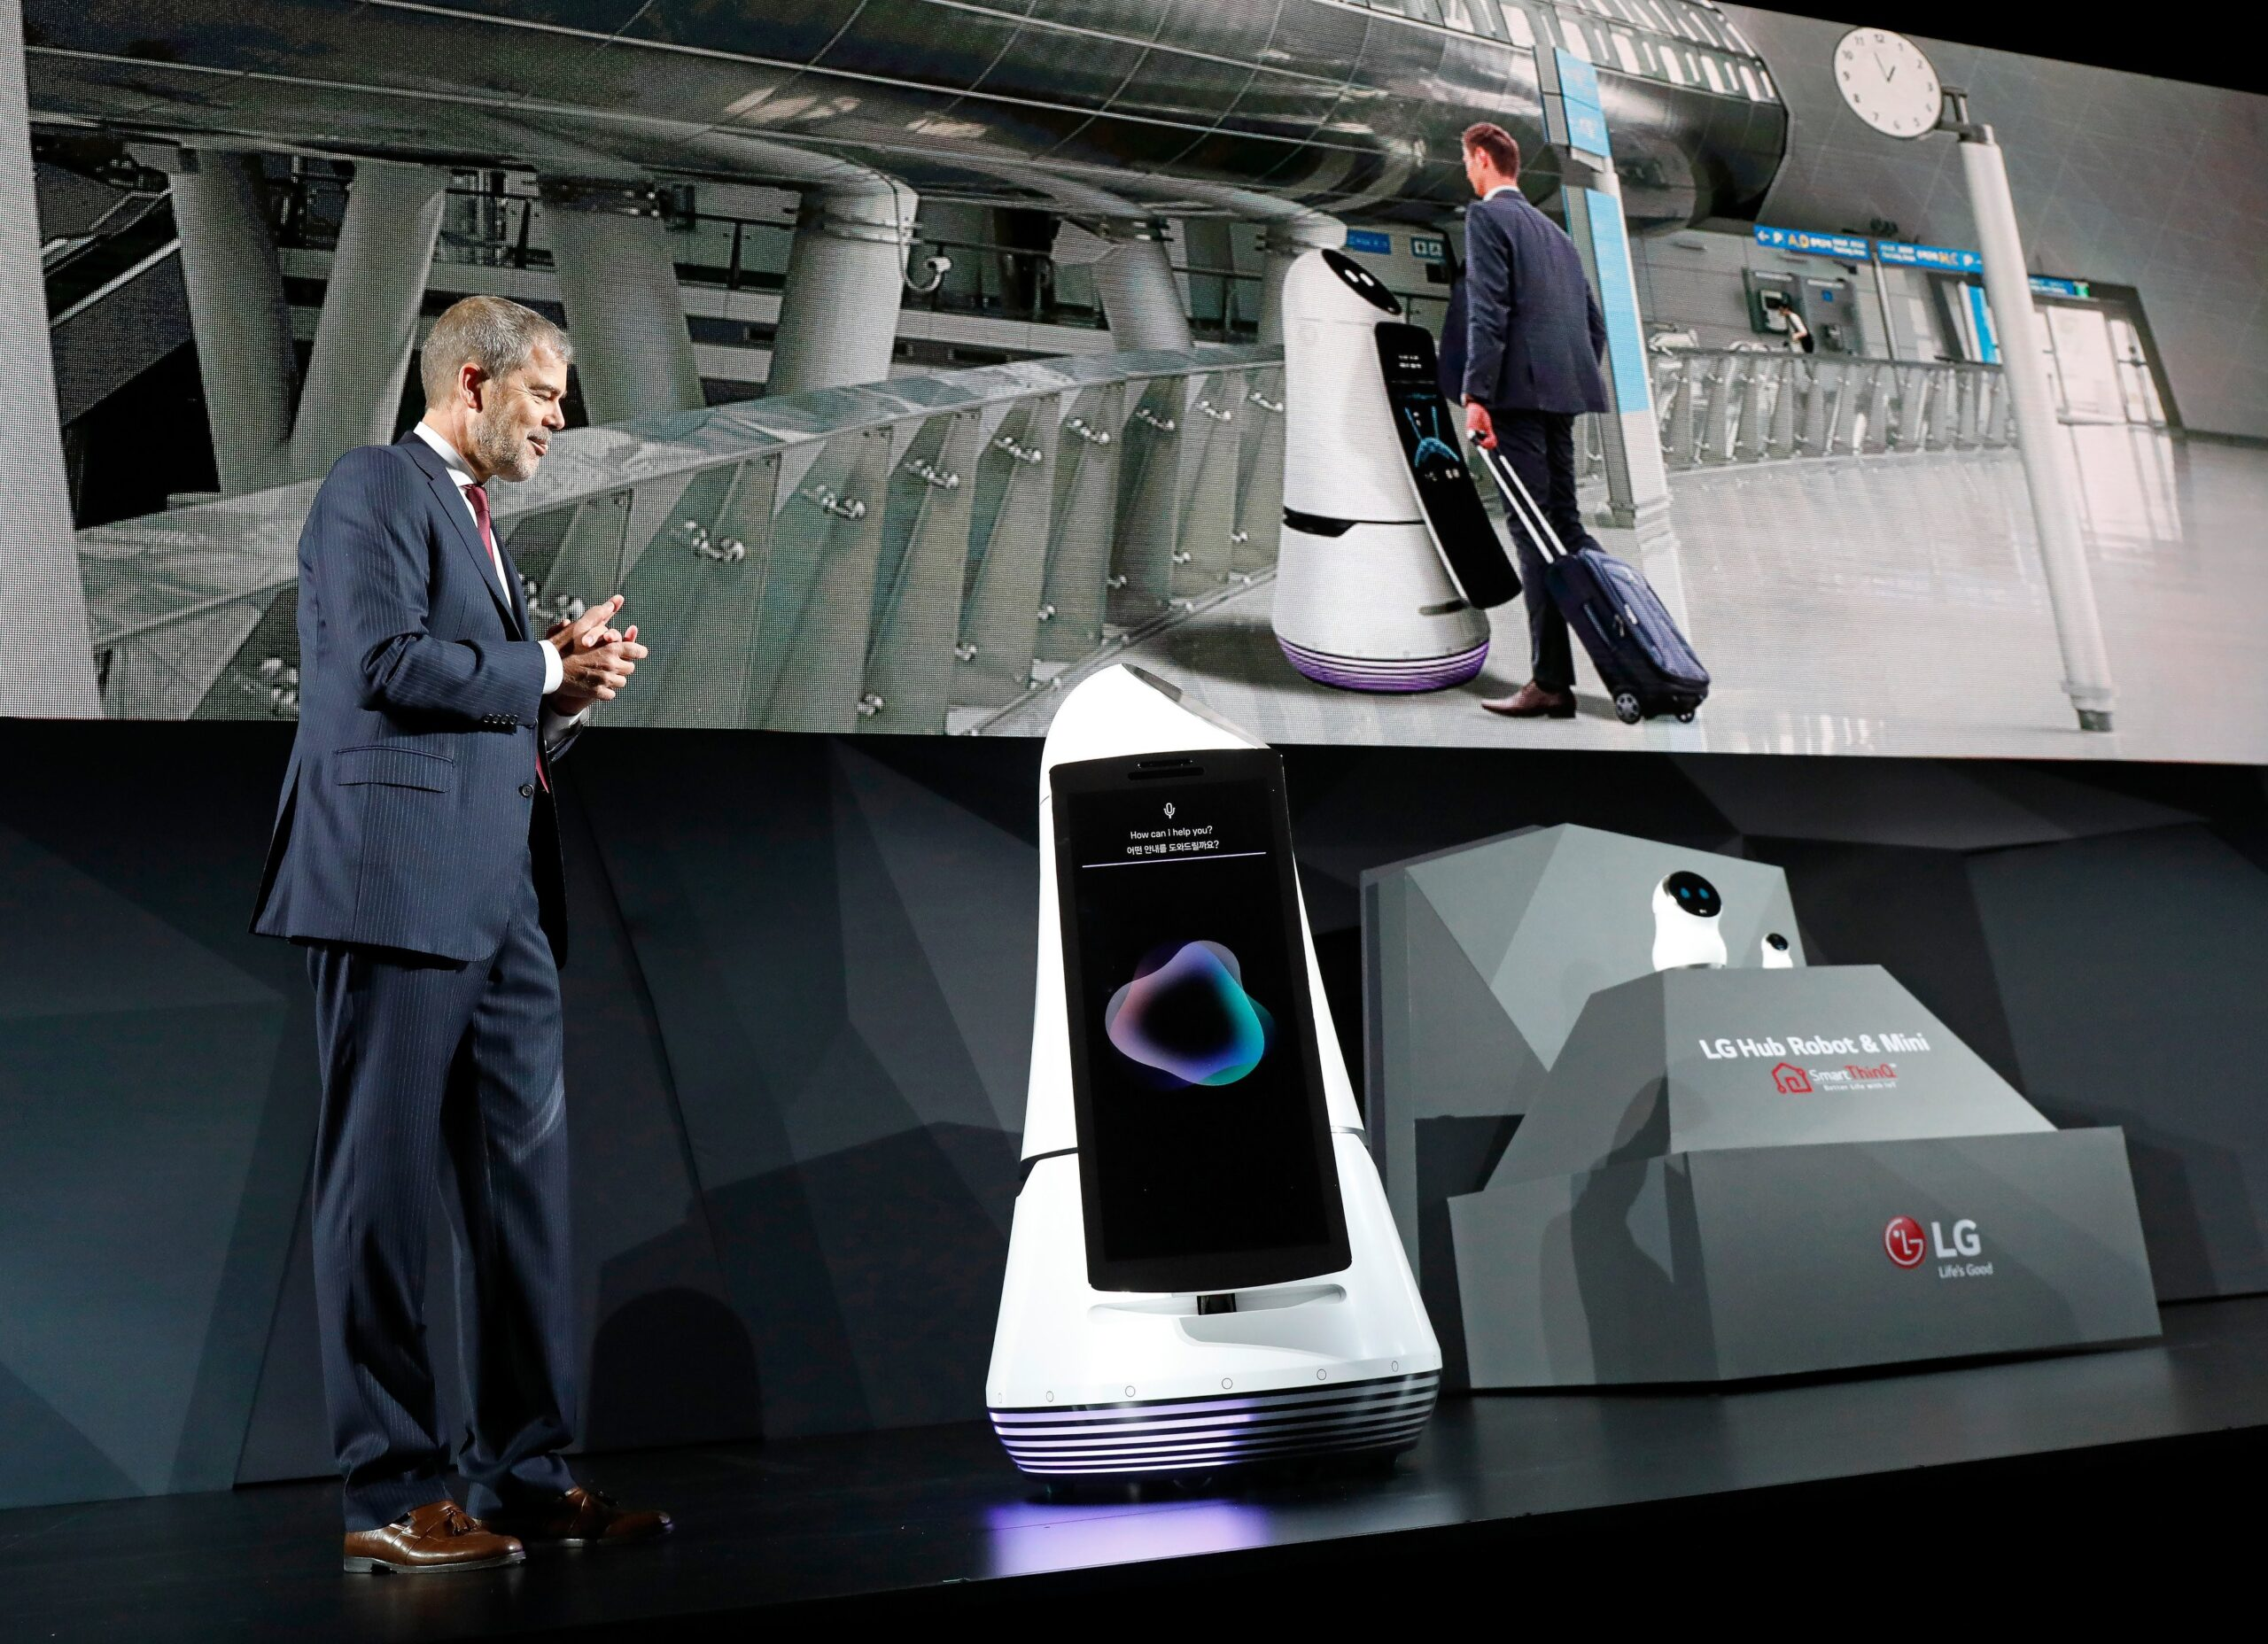 David VanderWaal, Senior Vice President, Marketing, LG Electronics introduces LG's Airport Guide Robot at its CES 2017 Press Conference.